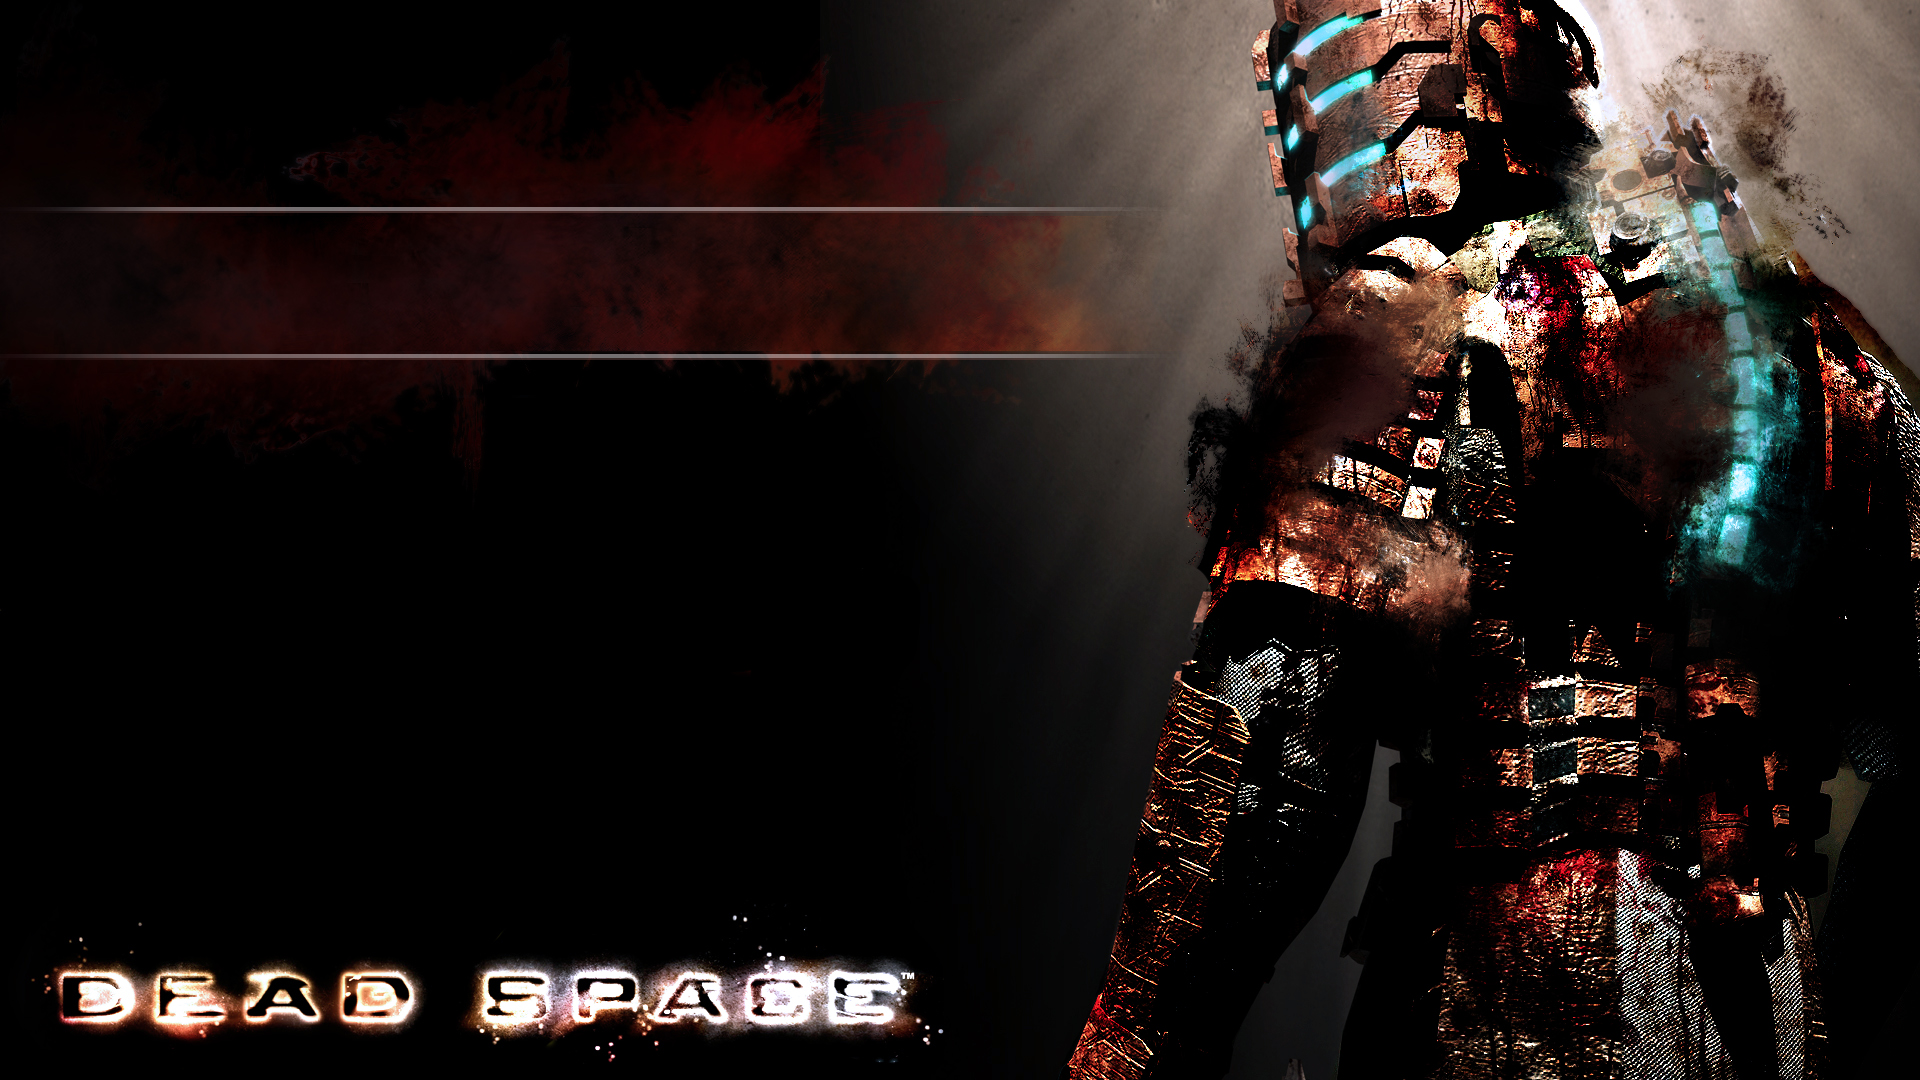 Dead Space Hd Wallpaper 1920x1080 Dead Space Hd | Home Design Ideas